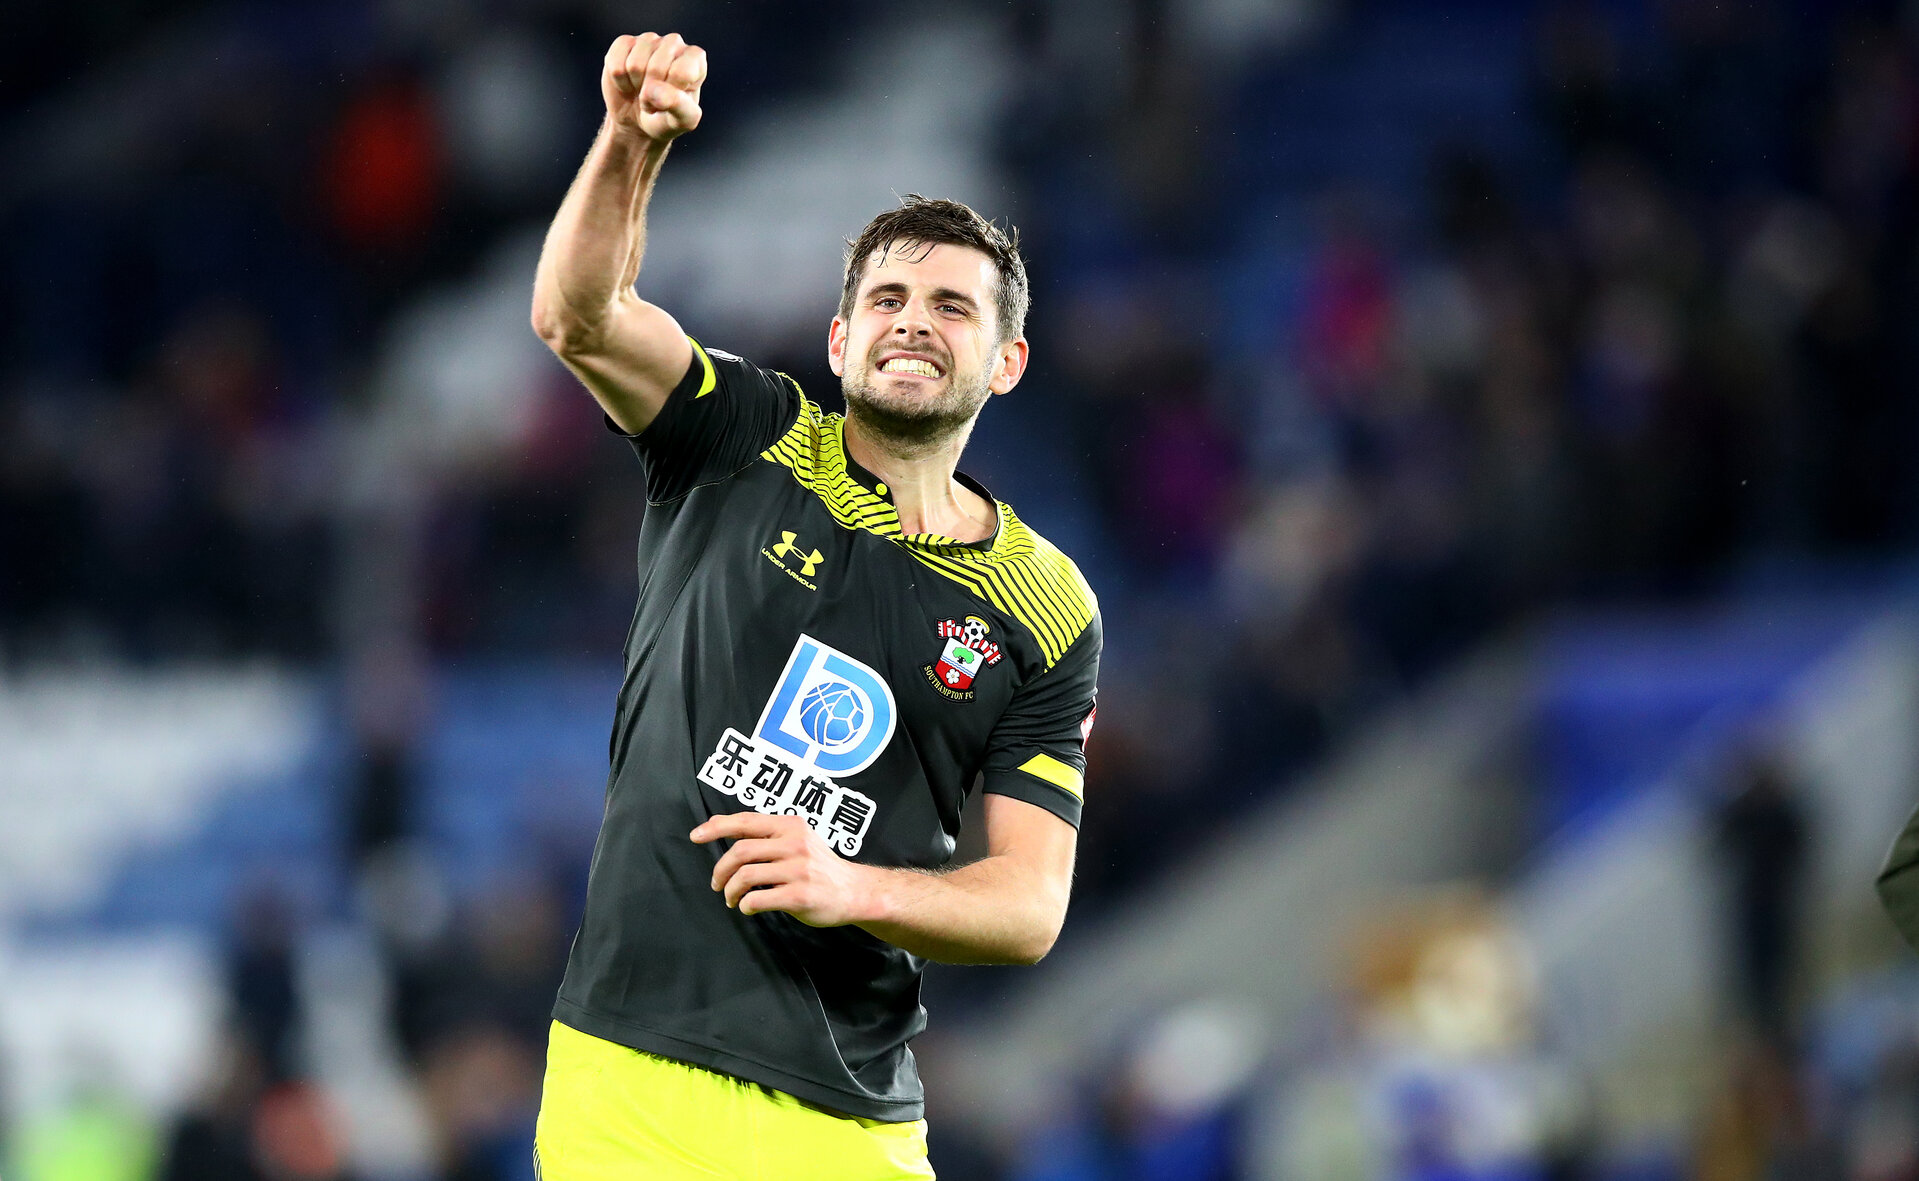 LEICESTER, ENGLAND - JANUARY 11: Jack Stephens of Southampton during the Premier League match between Leicester City and Southampton FC at The King Power Stadium on January 11, 2020 in Leicester, United Kingdom. (Photo by Matt Watson/Southampton FC via Getty Images)